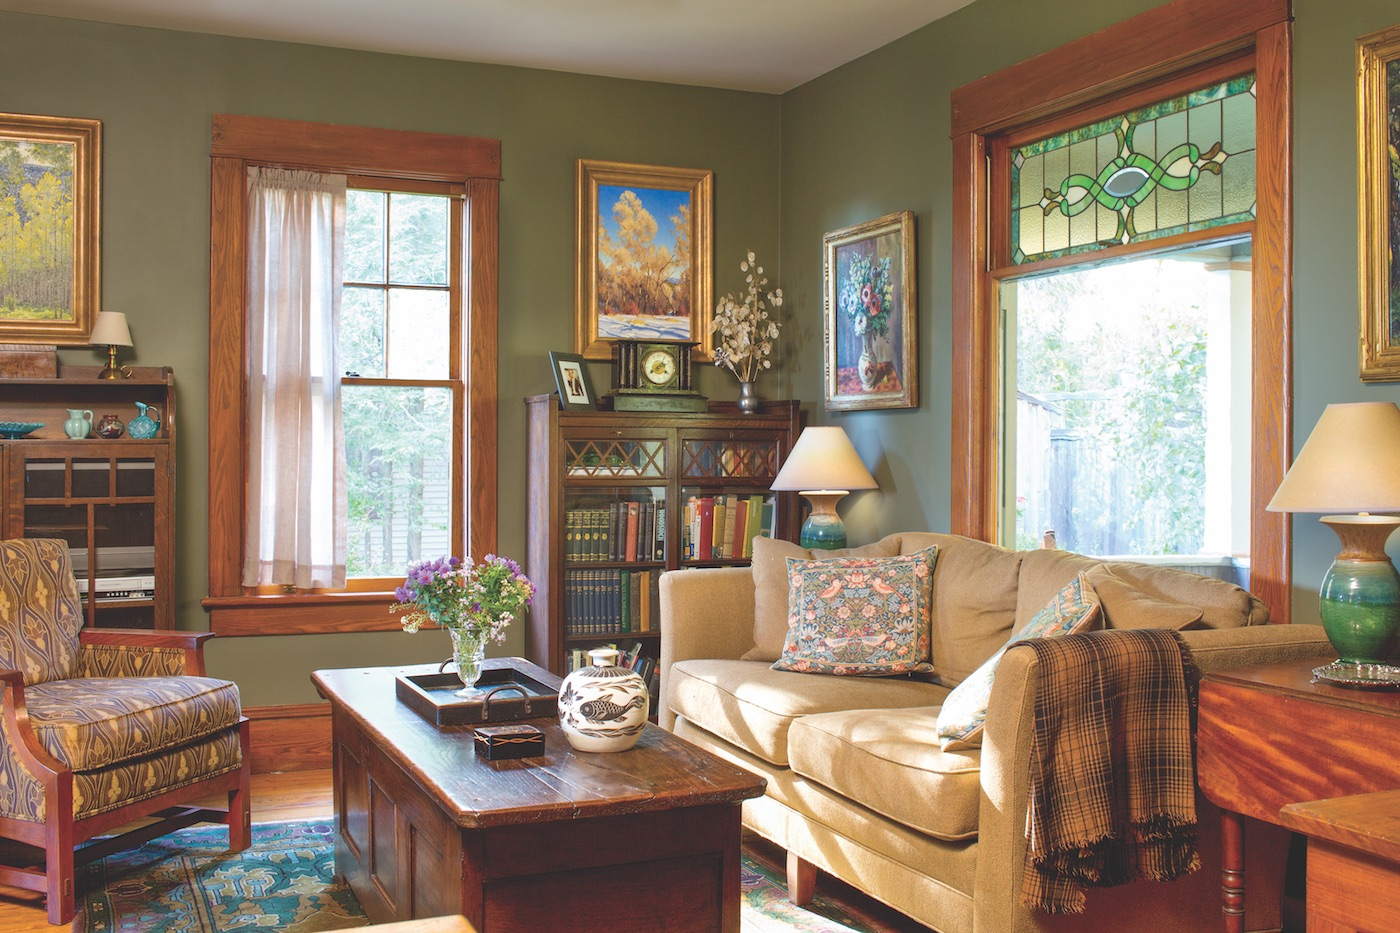 Living room with Stickley furniture